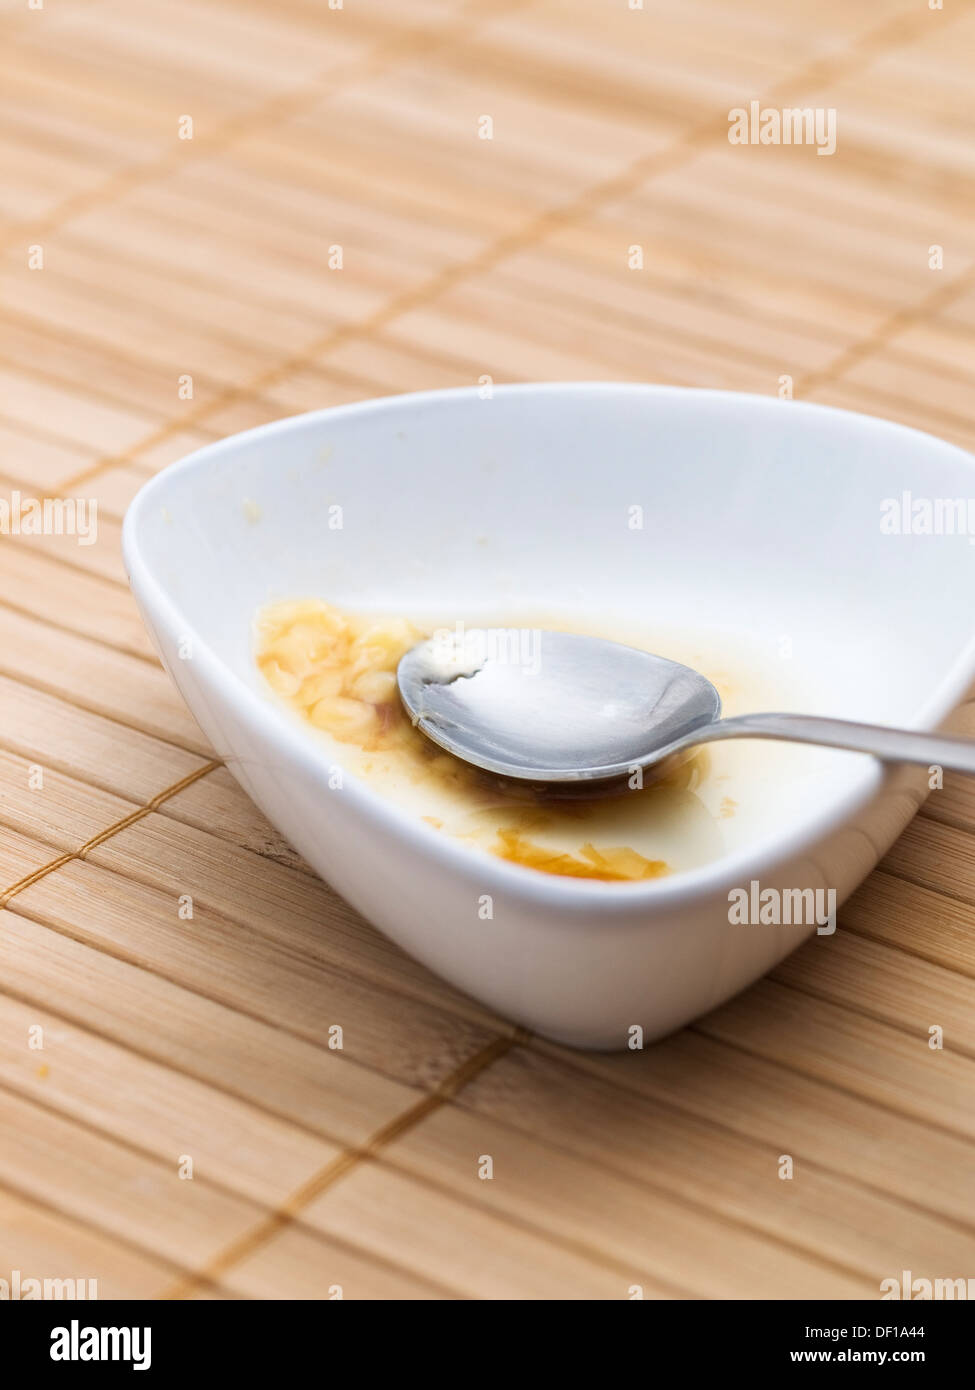 A bowl, a spoon and remains of pudding, macro detail. - Stock Image